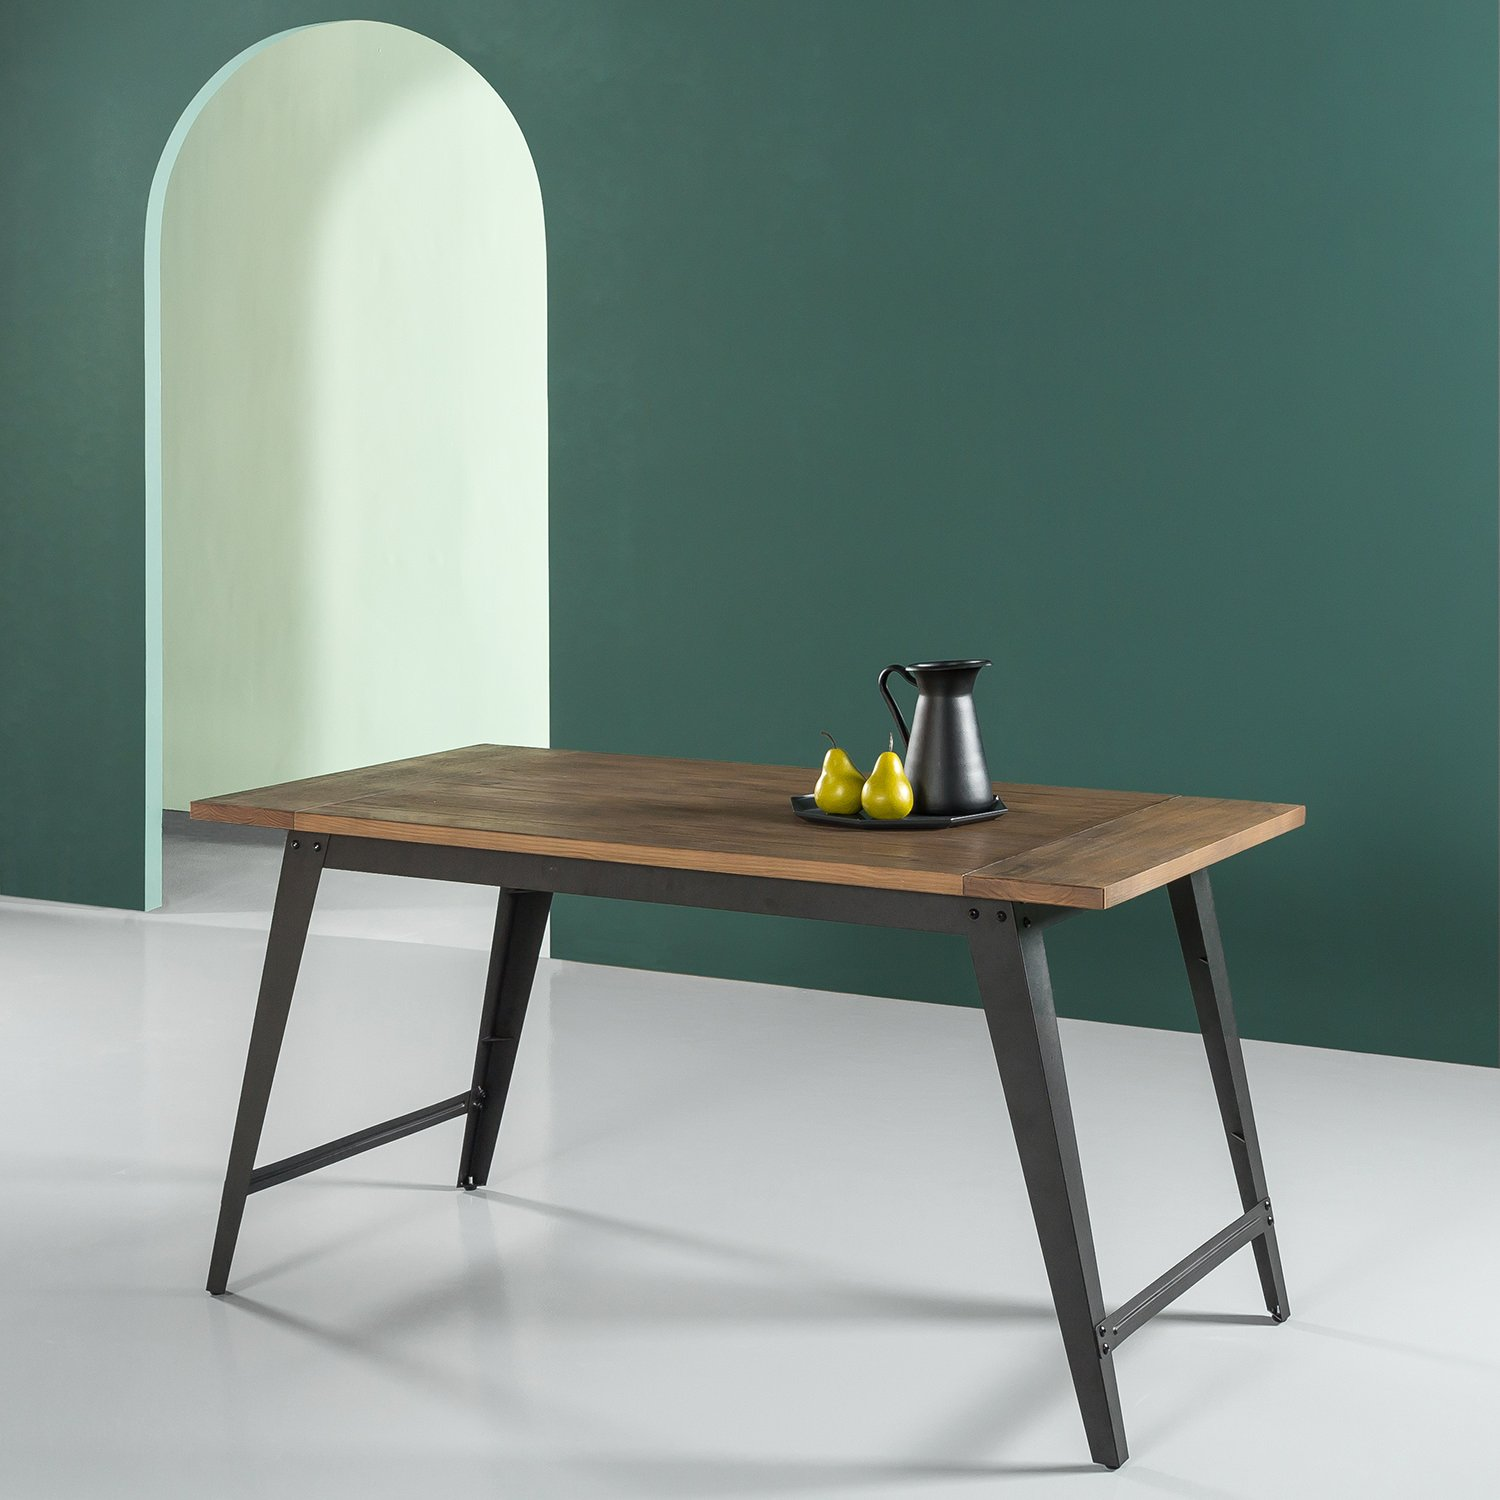 Zinus Donna Wood and Metal Dining Table by Zinus